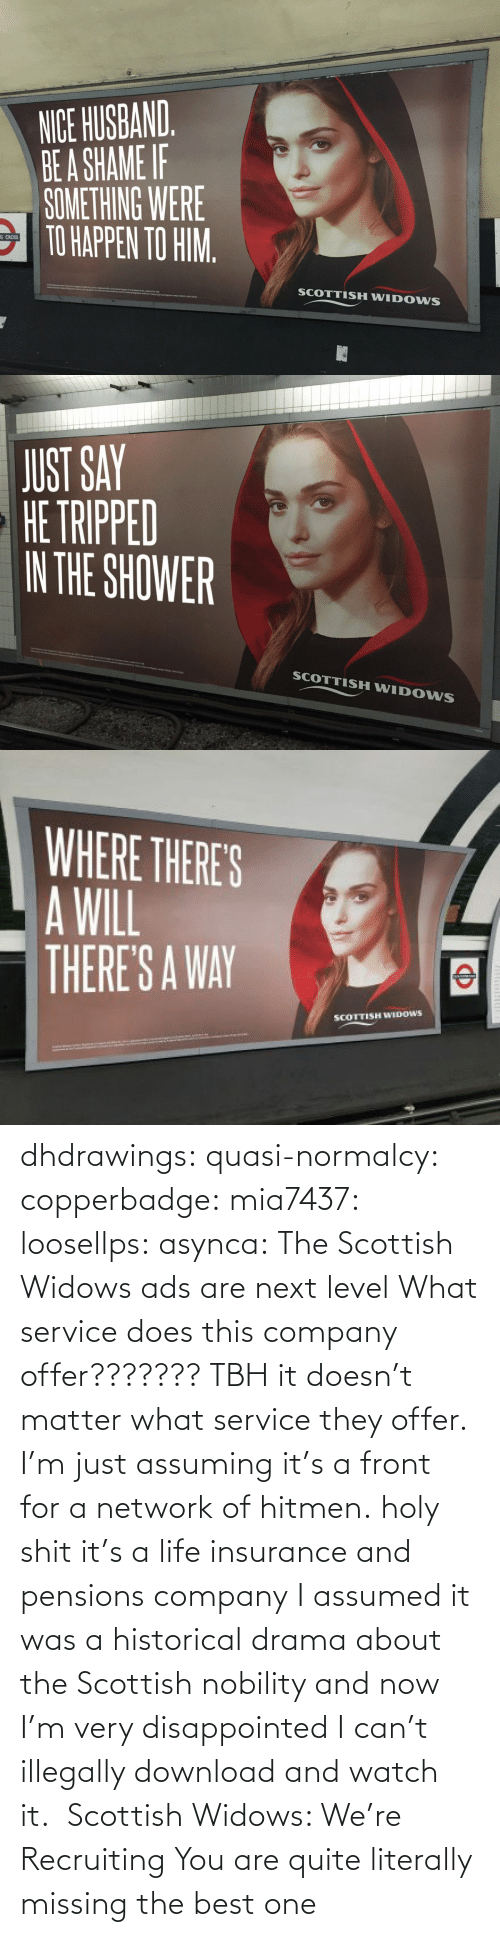 drama: dhdrawings:  quasi-normalcy:  copperbadge:  mia7437:  loosellps:  asynca: The Scottish Widows ads are next level What service does this company offer??????? TBH it doesn't matter what service they offer. I'm just assuming it's a front for a network of hitmen.  holy shit it's a life insurance and pensions company  I assumed it was a historical drama about the Scottish nobility and now I'm very disappointed I can't illegally download and watch it.     Scottish Widows: We're Recruiting    You are quite literally missing the best one